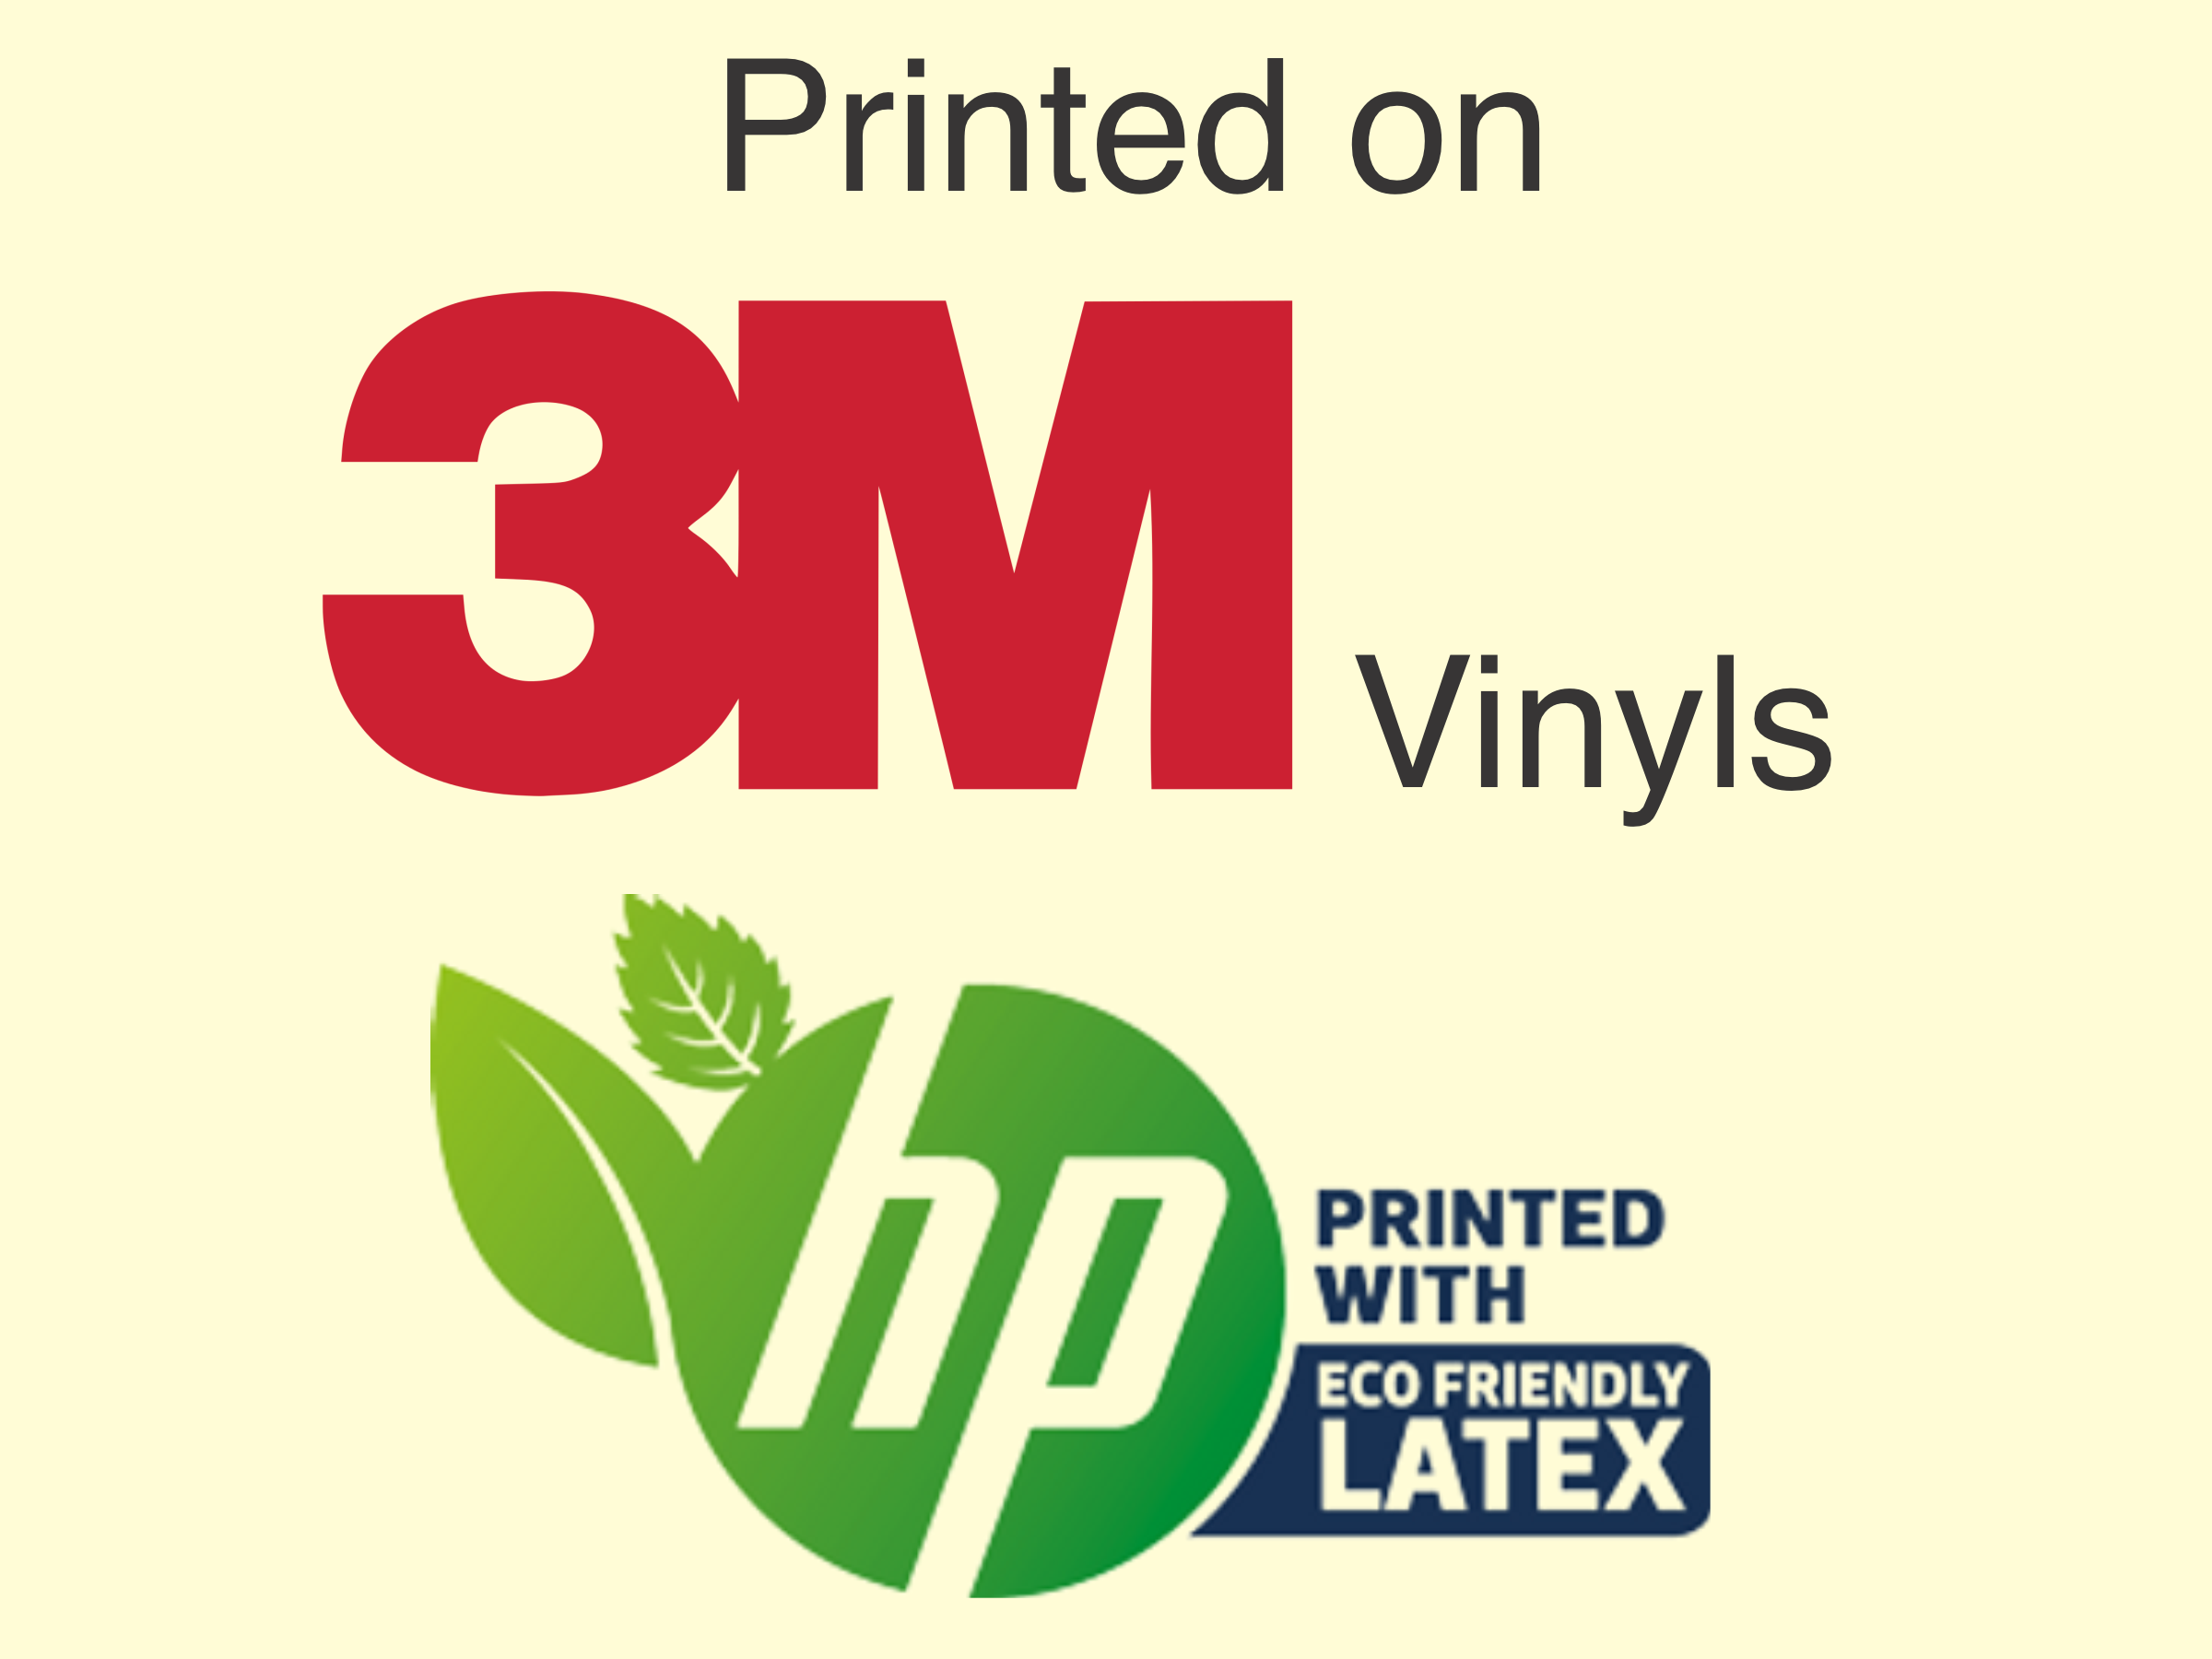 3m vinyl stickers outdoor hp latex ink